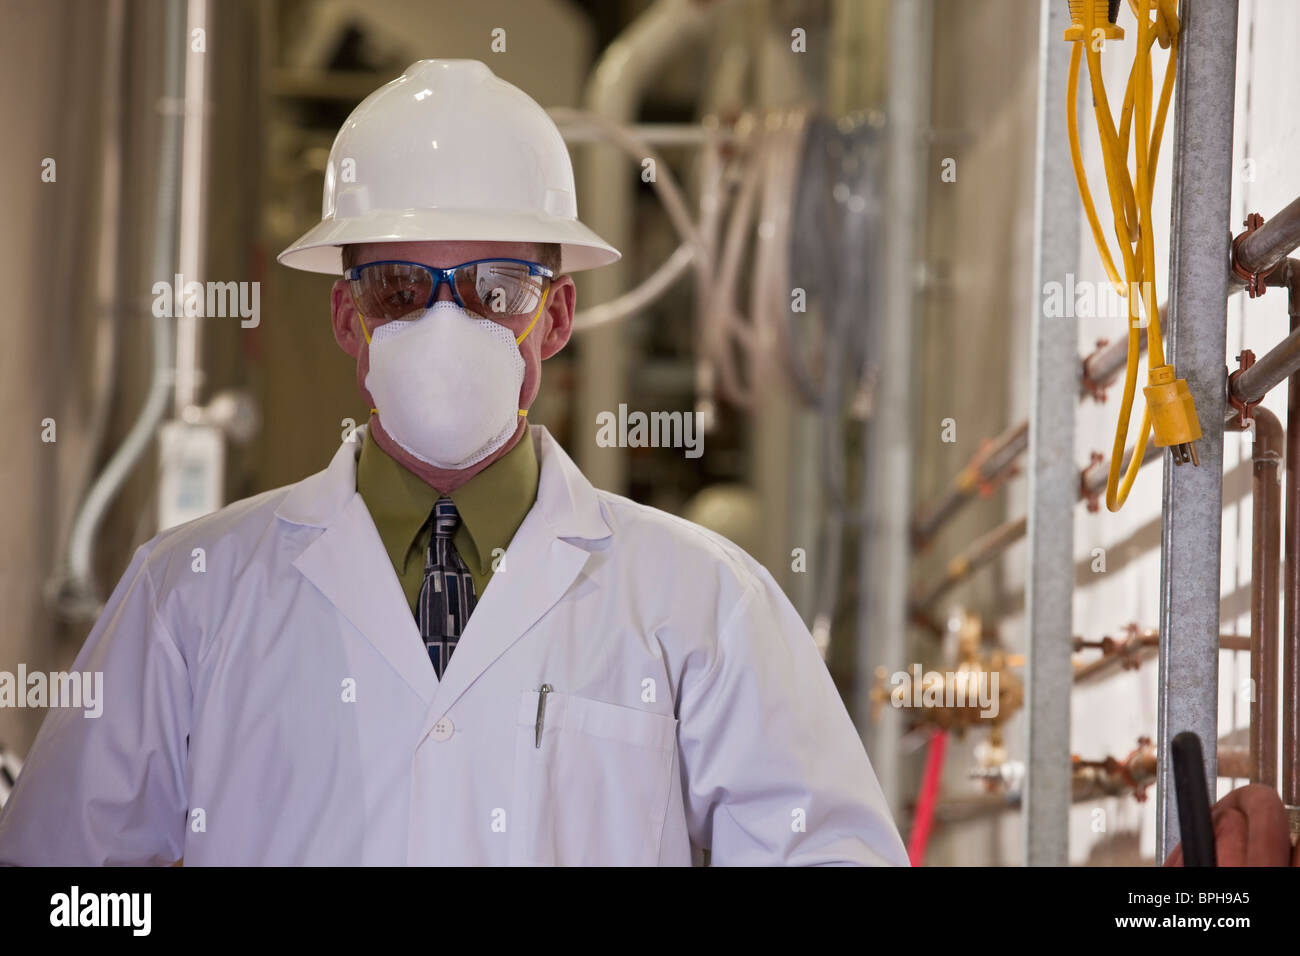 Engineer wearing a pollution mask in a chemical plant - Stock Image